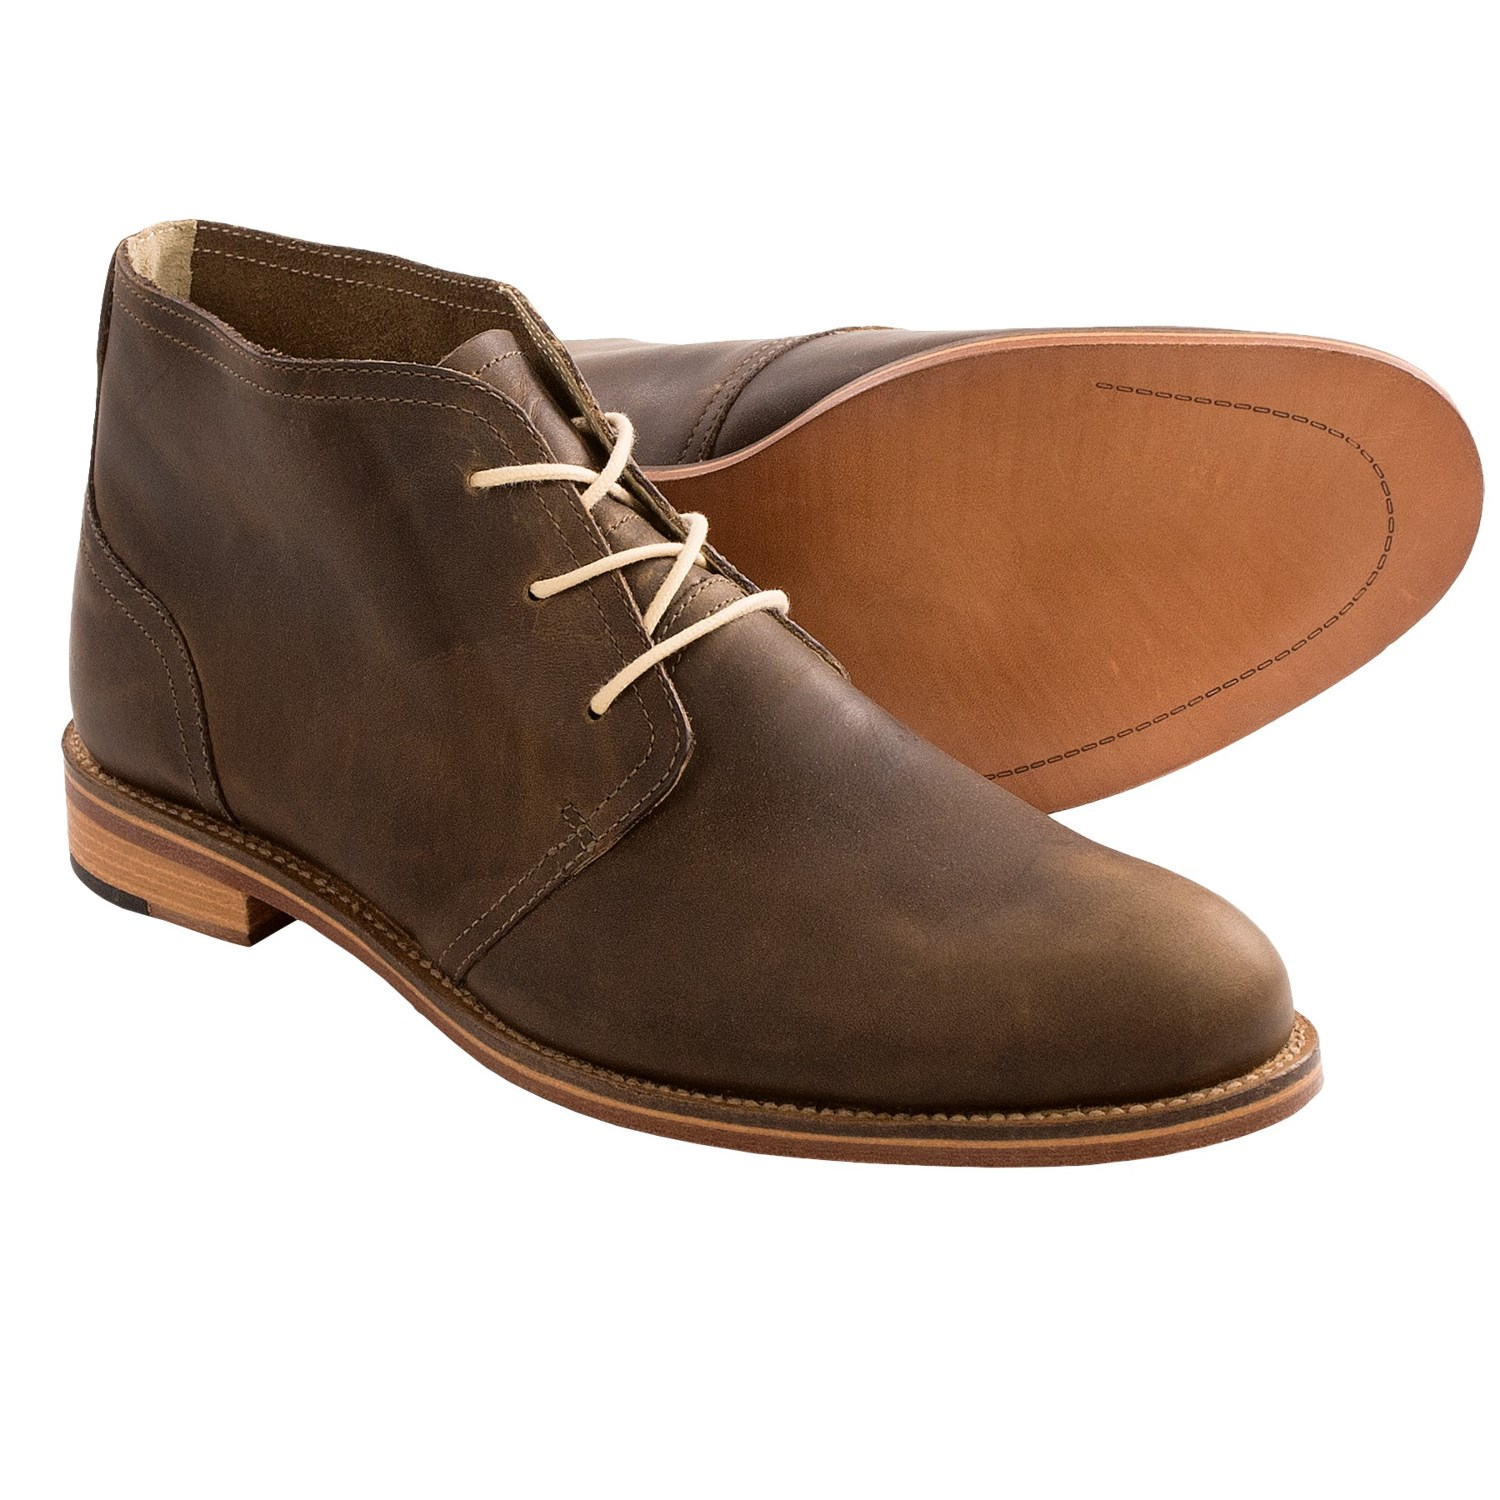 J. Shoes Monarch Chukka Boots - Leather (For Men) - Save 58%